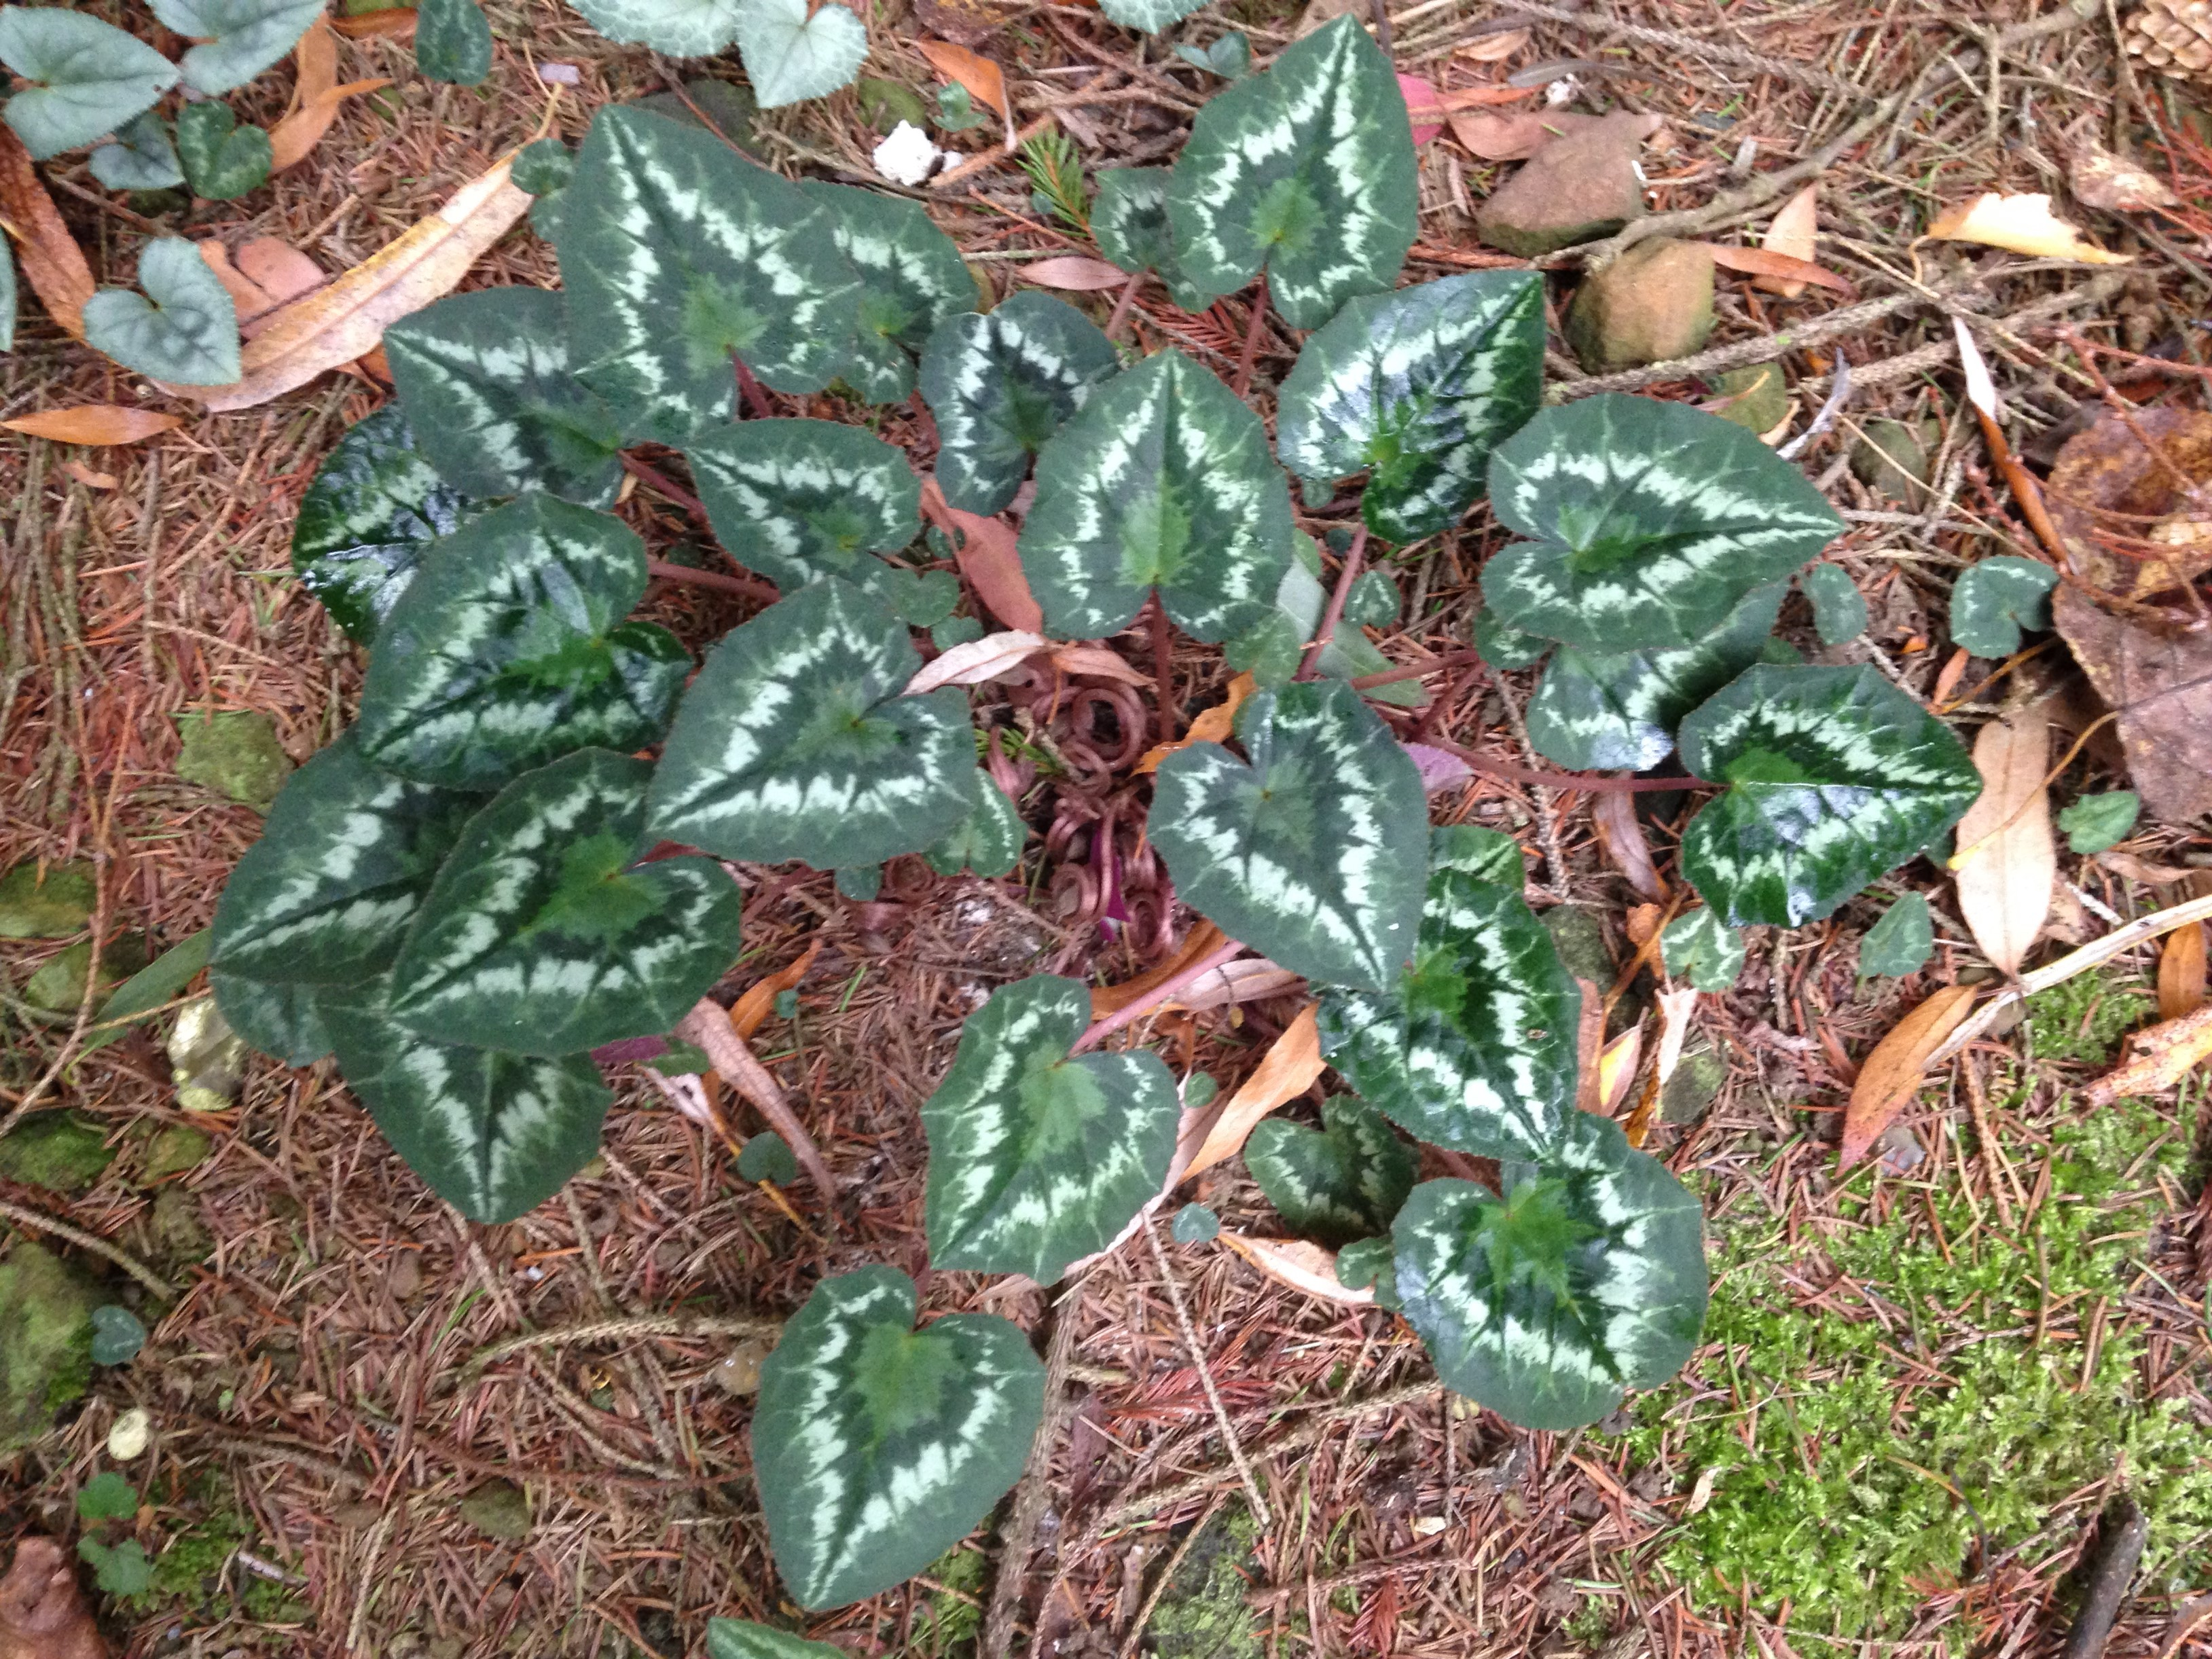 A naturalised Cyclamen Hederifolium at Willows Nursery showing the differing leaf patterns